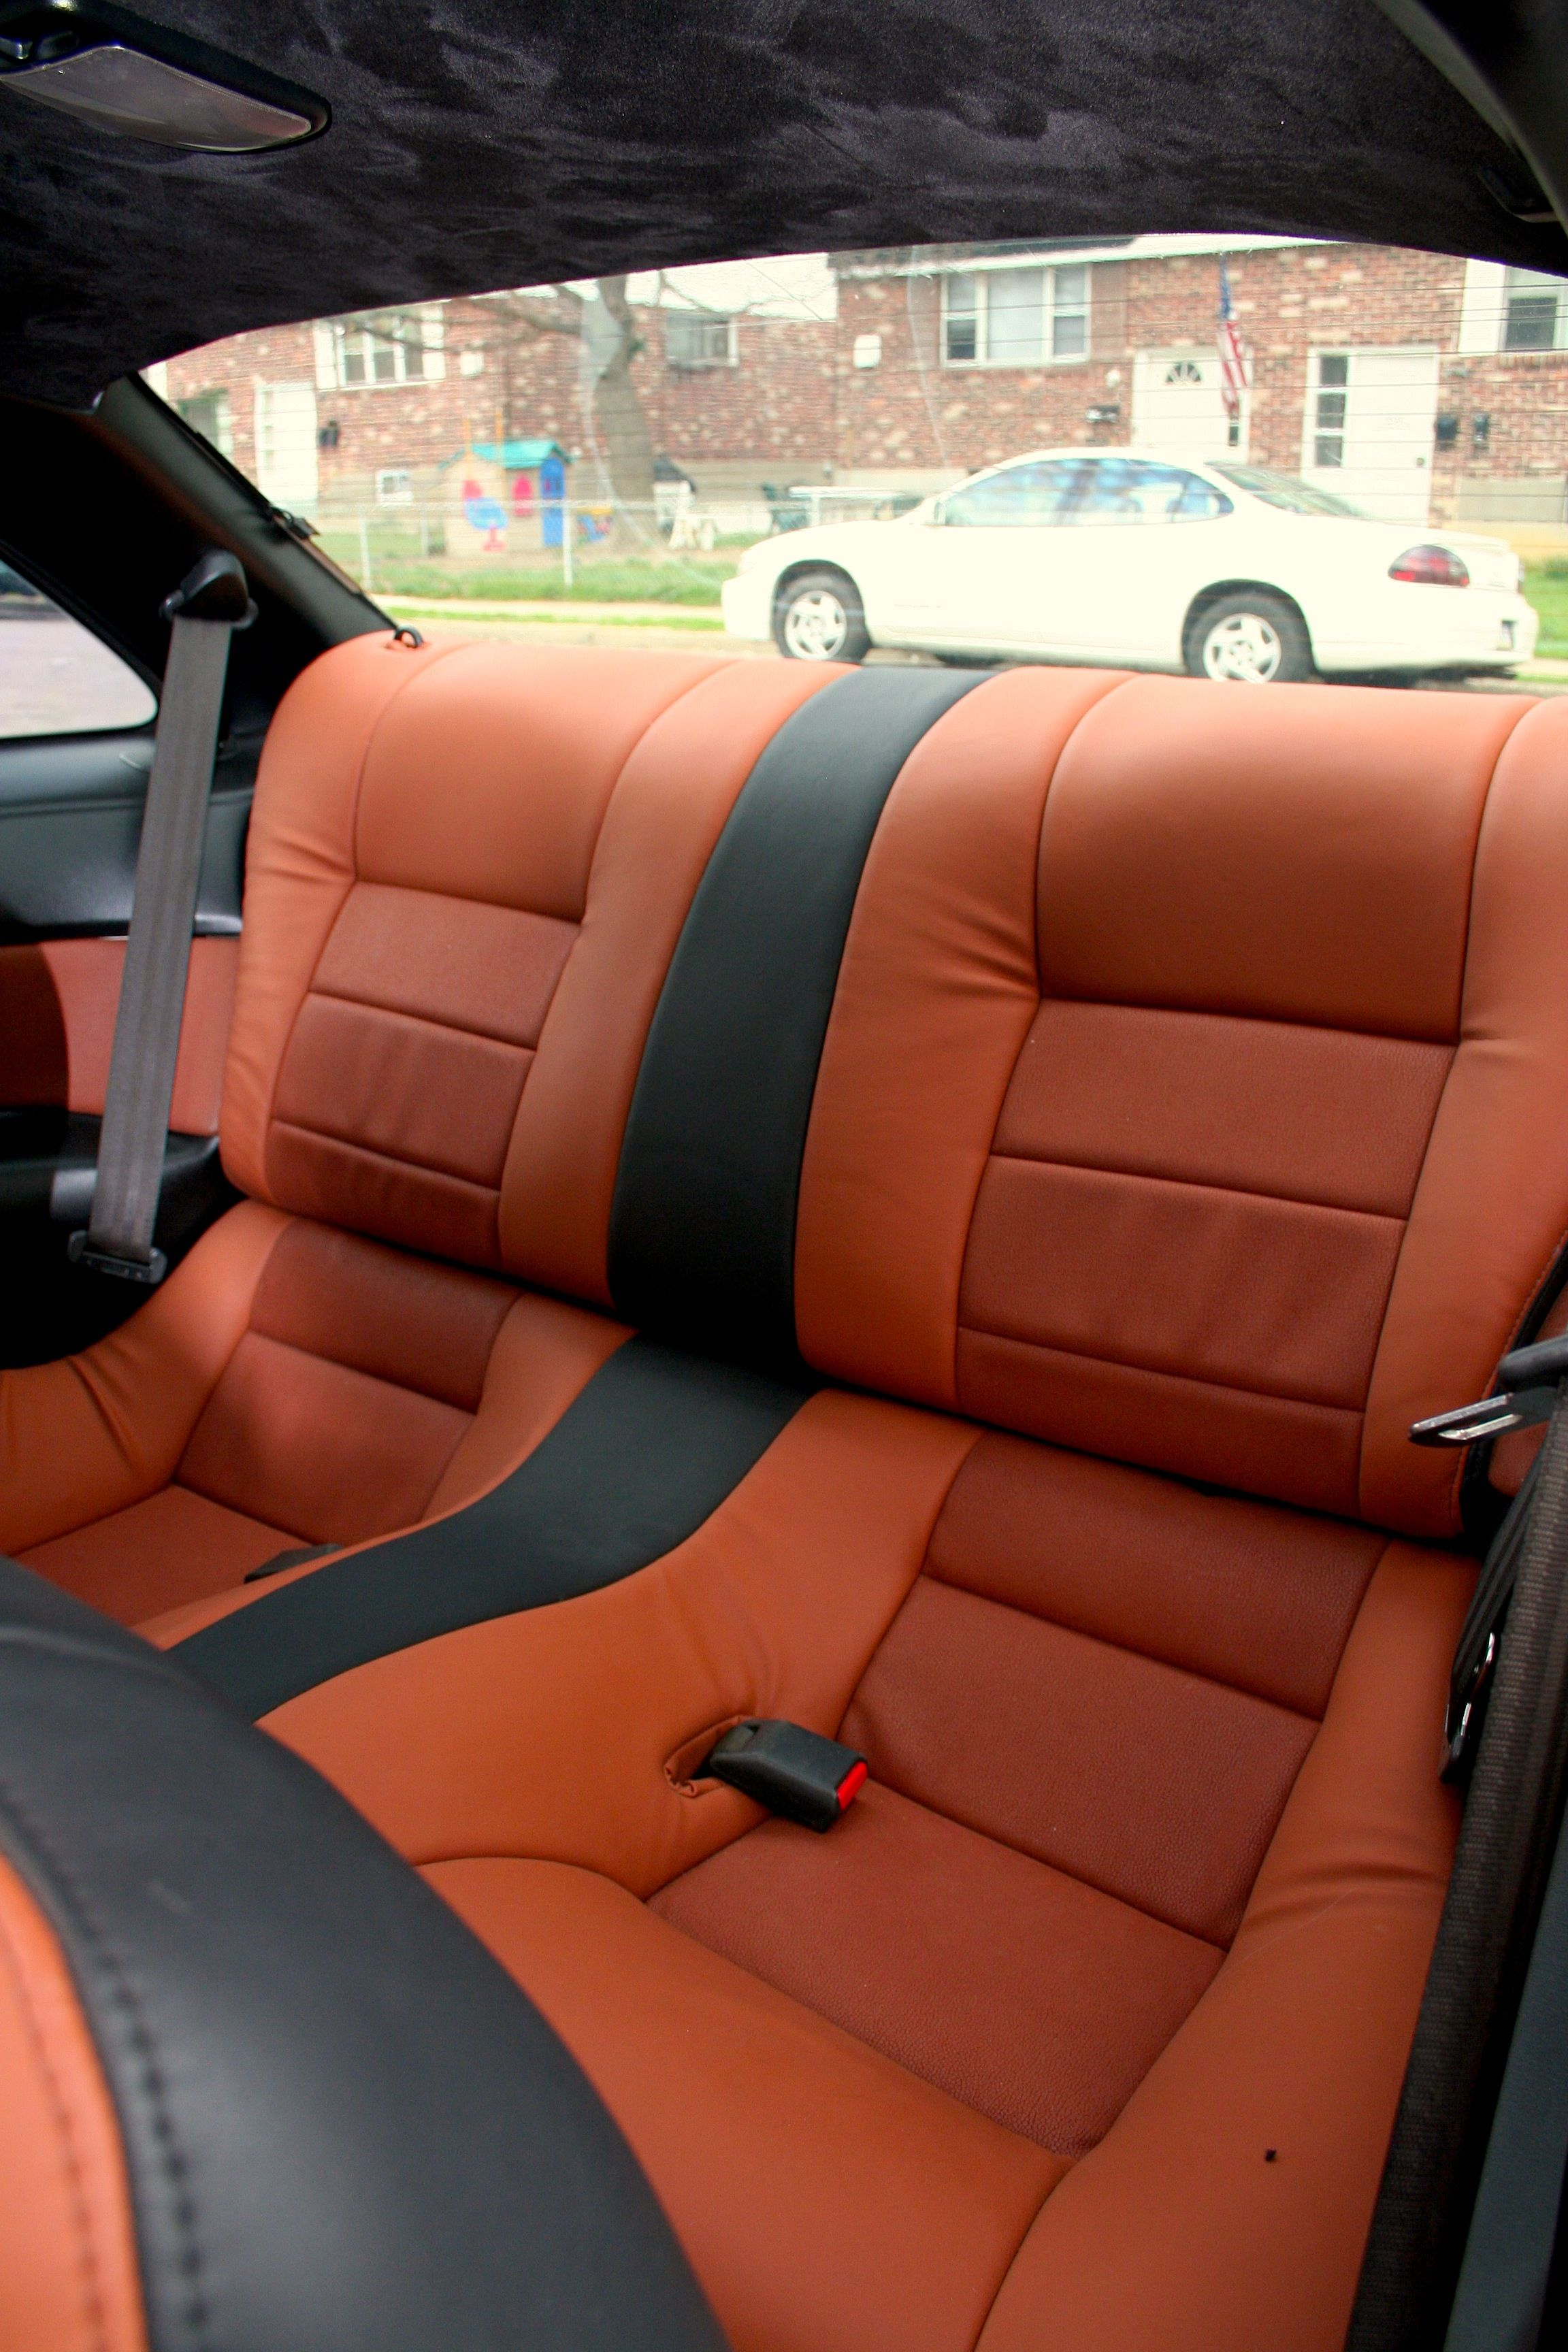 width spotted interior ml mercedes news photo camo m nearly too free shots spy class benz